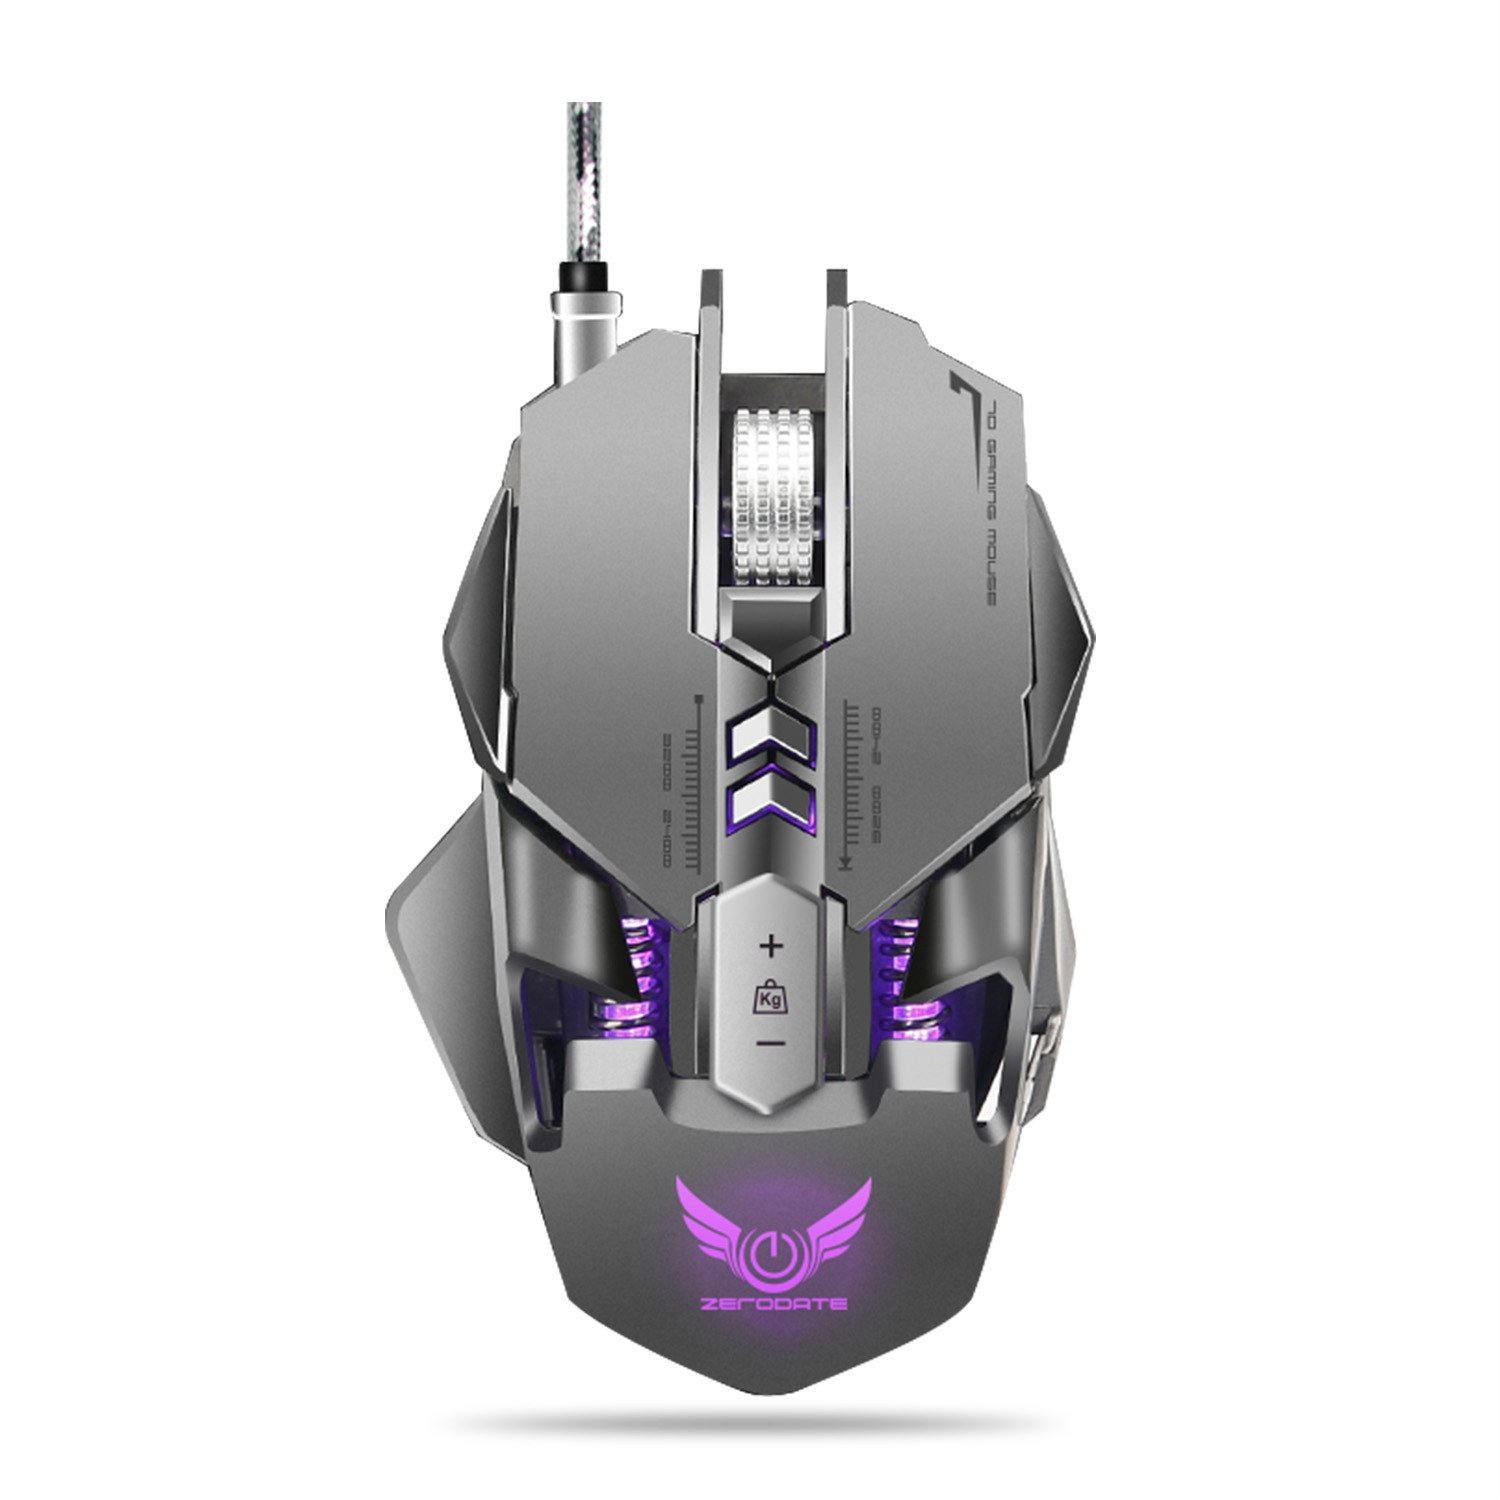 Gaming Mouse, JUKSTG-ZERODATE 7 Programmable Buttons Ergonomic Weight Adjustable Wired Game Mouse with RGB Circular and Breathing Light, 3200 DPI,for Windows 7 8 10 2000 XP Vista Linux,Gray